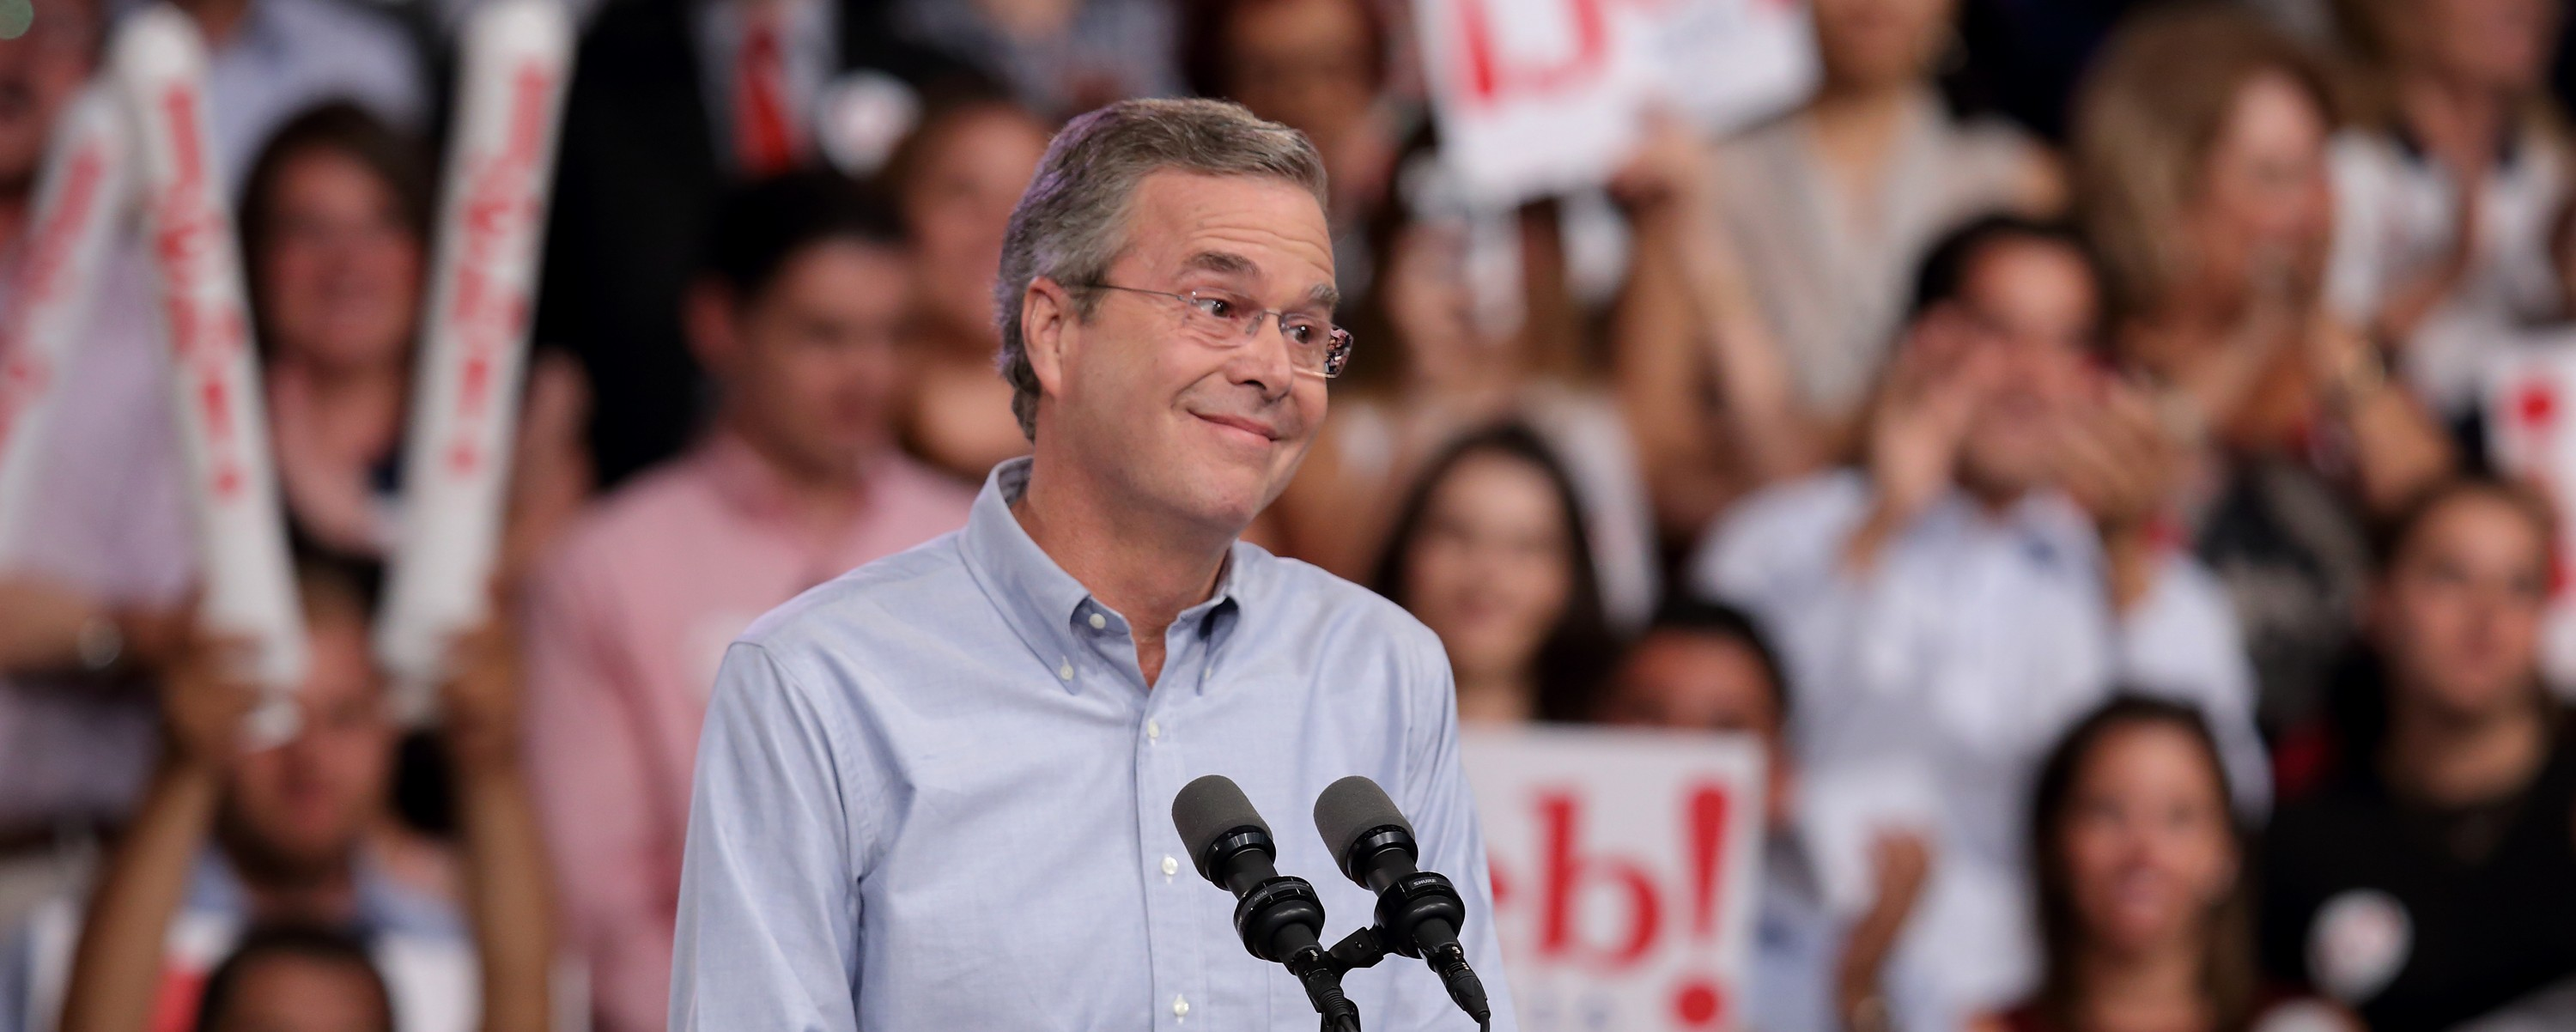 Jeb Bush Is Also Not So Keen on the Pope's Concerns About Climate Change